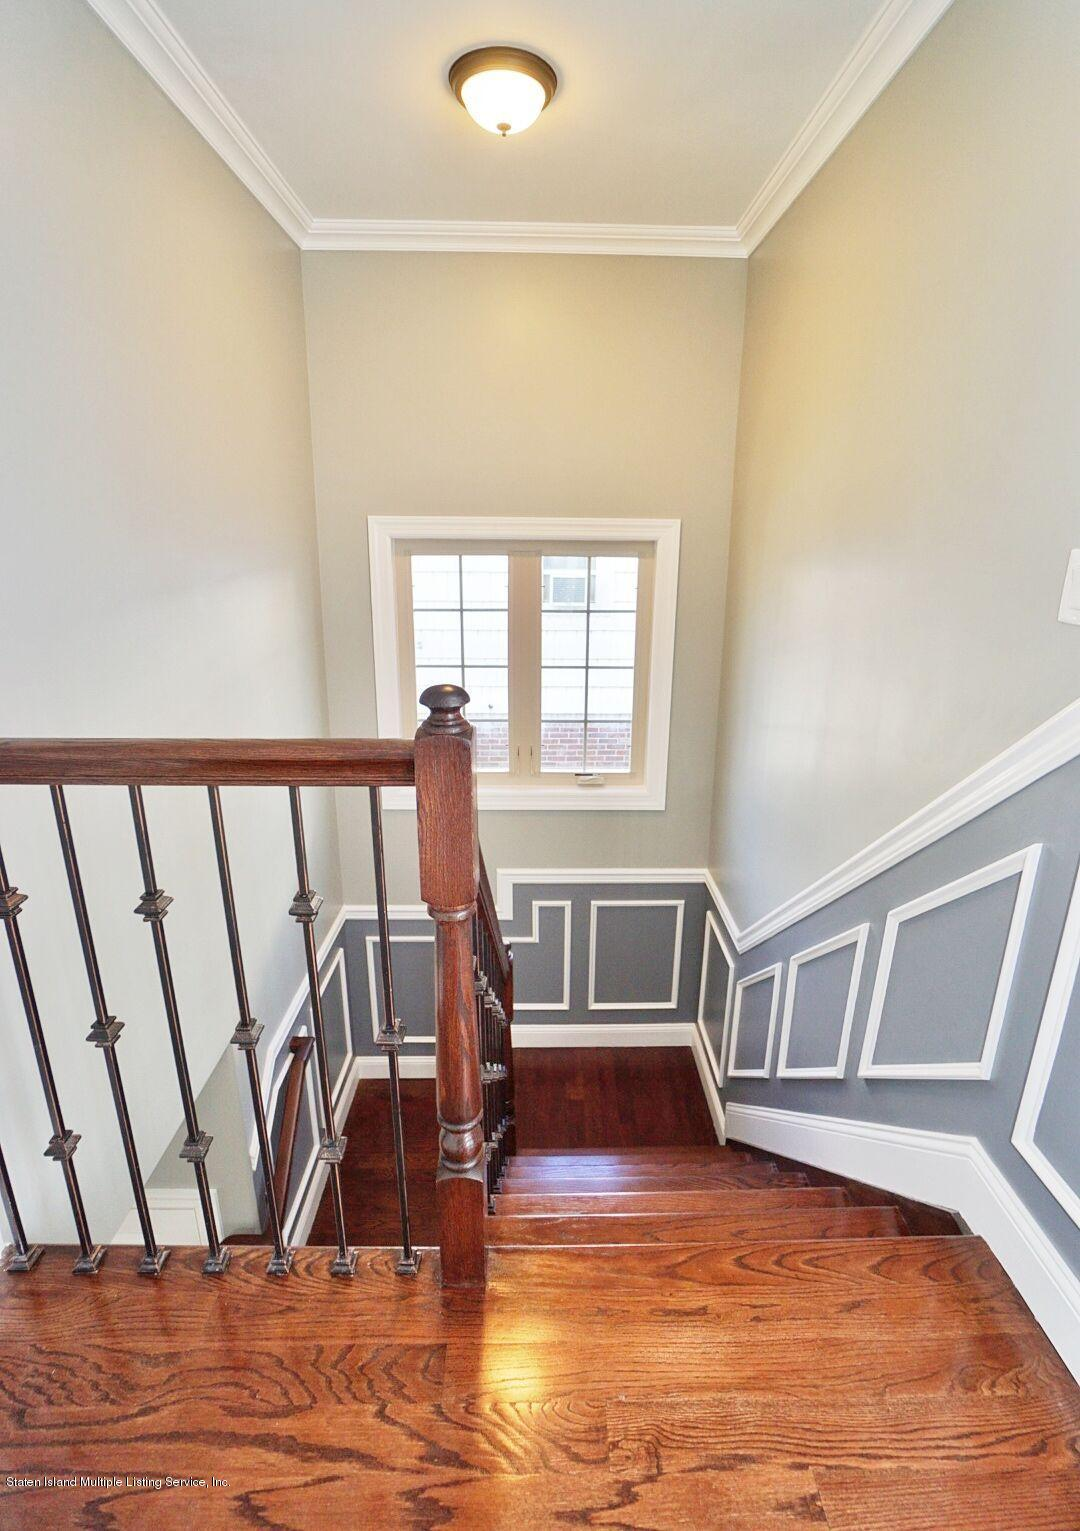 Single Family - Detached 165 Woolley Avenue  Staten Island, NY 10314, MLS-1128875-36